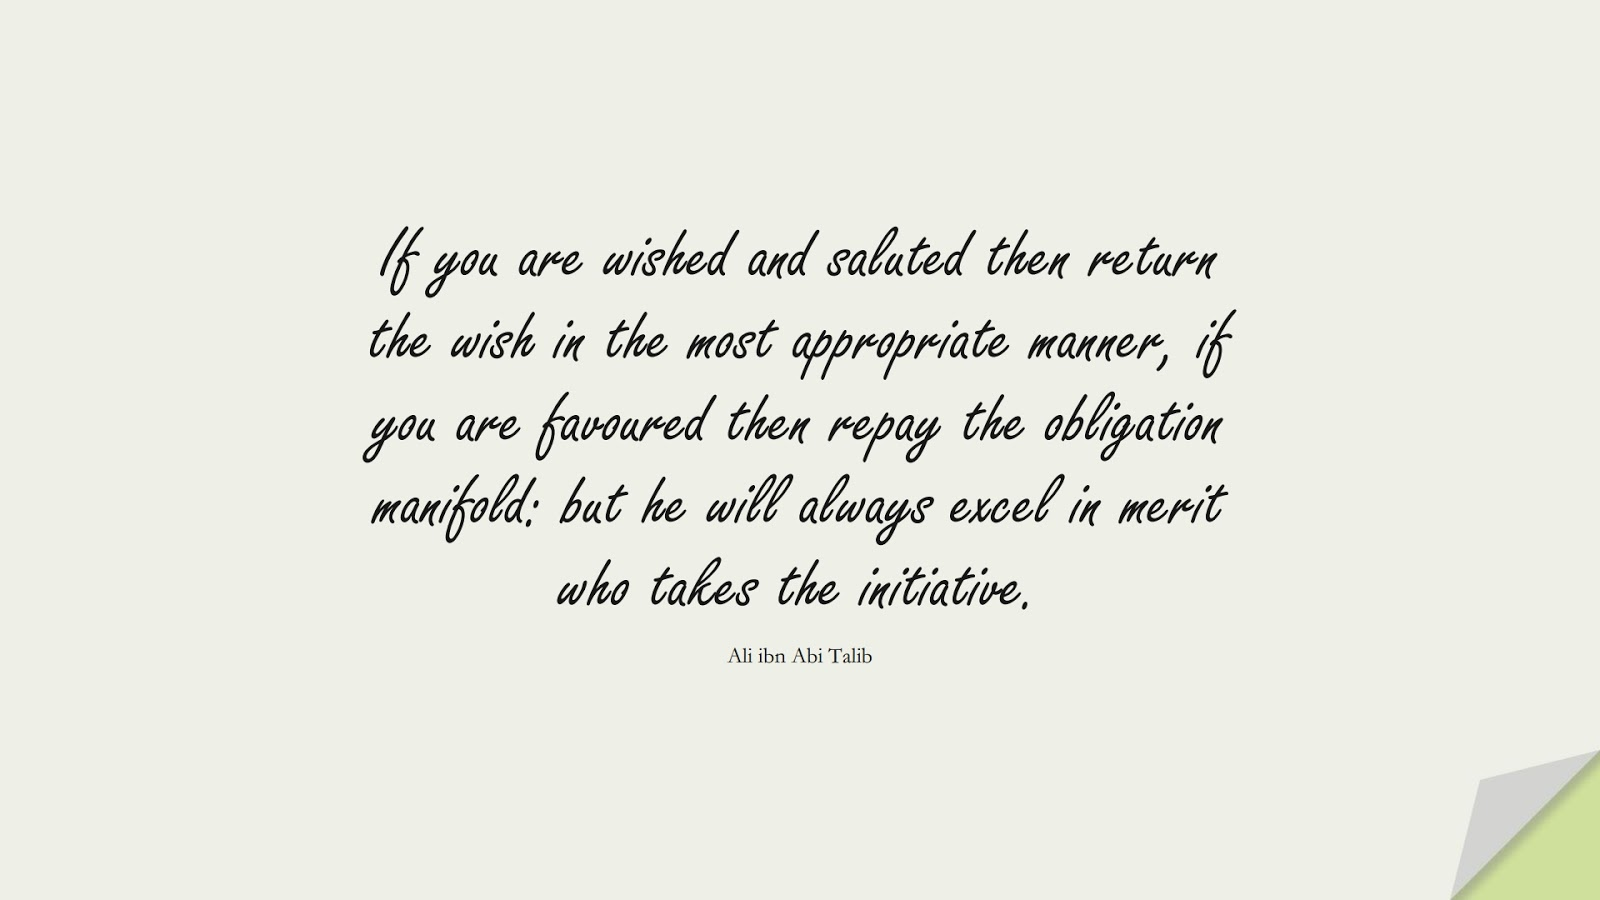 If you are wished and saluted then return the wish in the most appropriate manner, if you are favoured then repay the obligation manifold: but he will always excel in merit who takes the initiative. (Ali ibn Abi Talib);  #AliQuotes